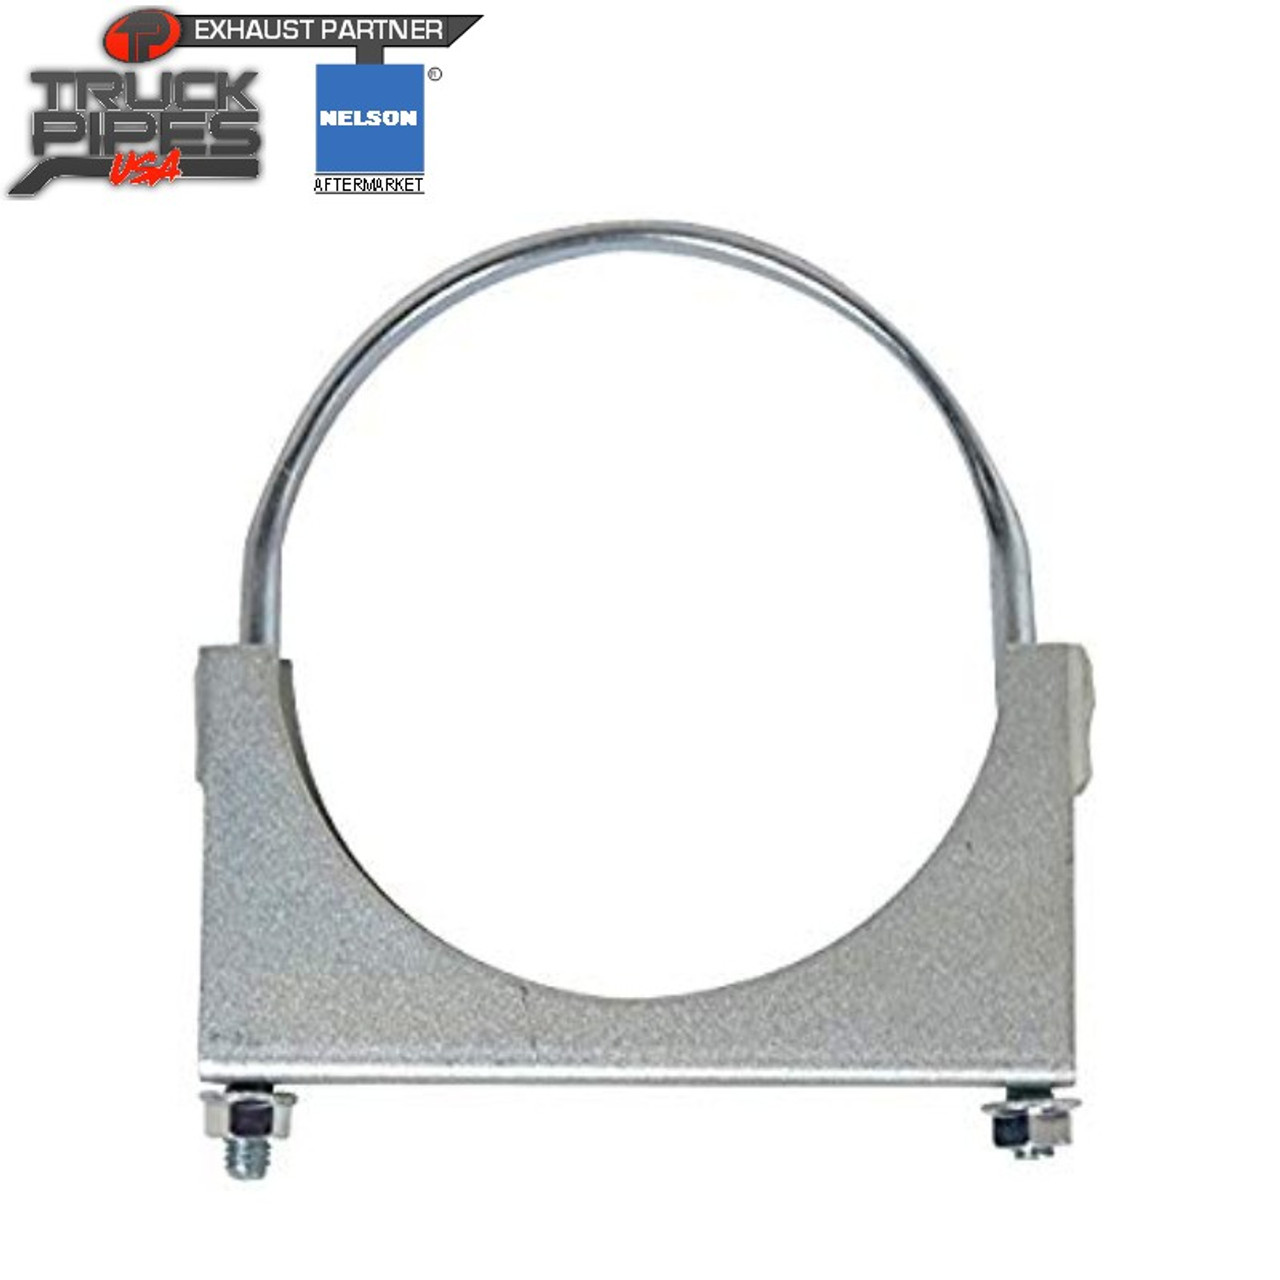 "2.75"" Standard U-Bolt Plain Steel Exhaust Clamp 900040K Nelson 900040K"